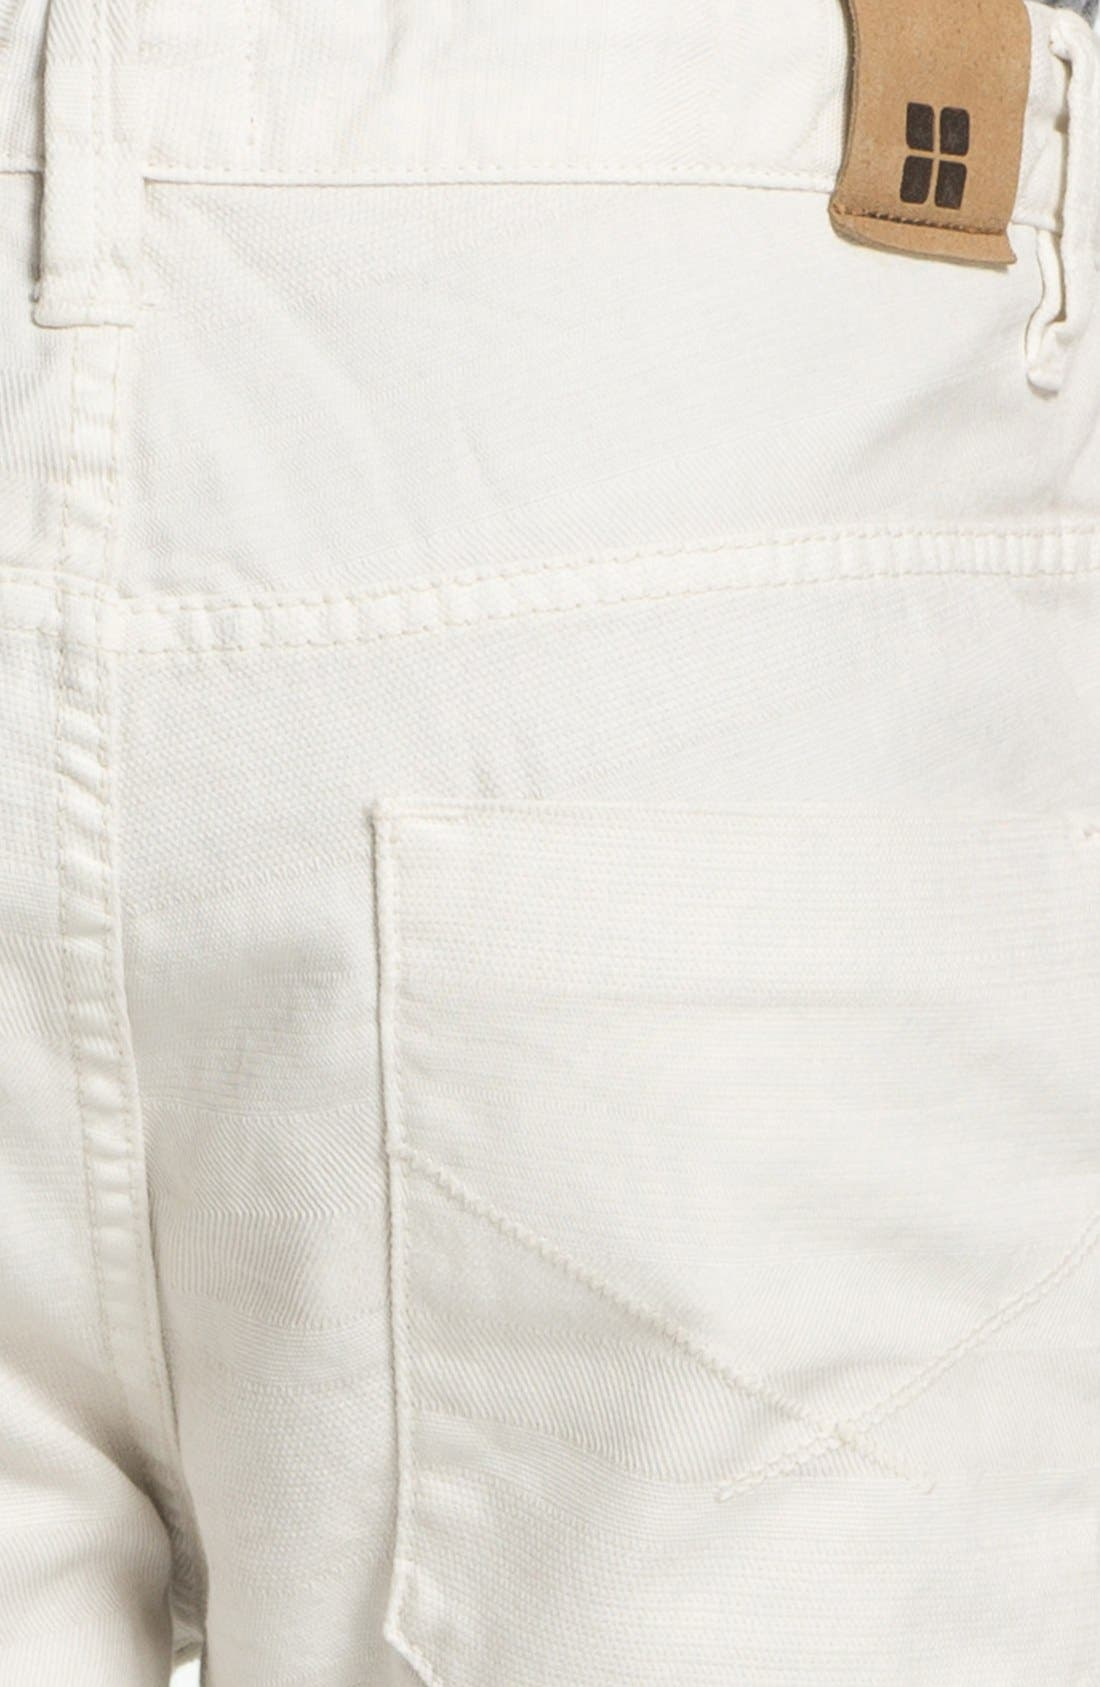 Alternate Image 4  - Insight 'Loose Joints' Slim Leg Jeans (Stoned)